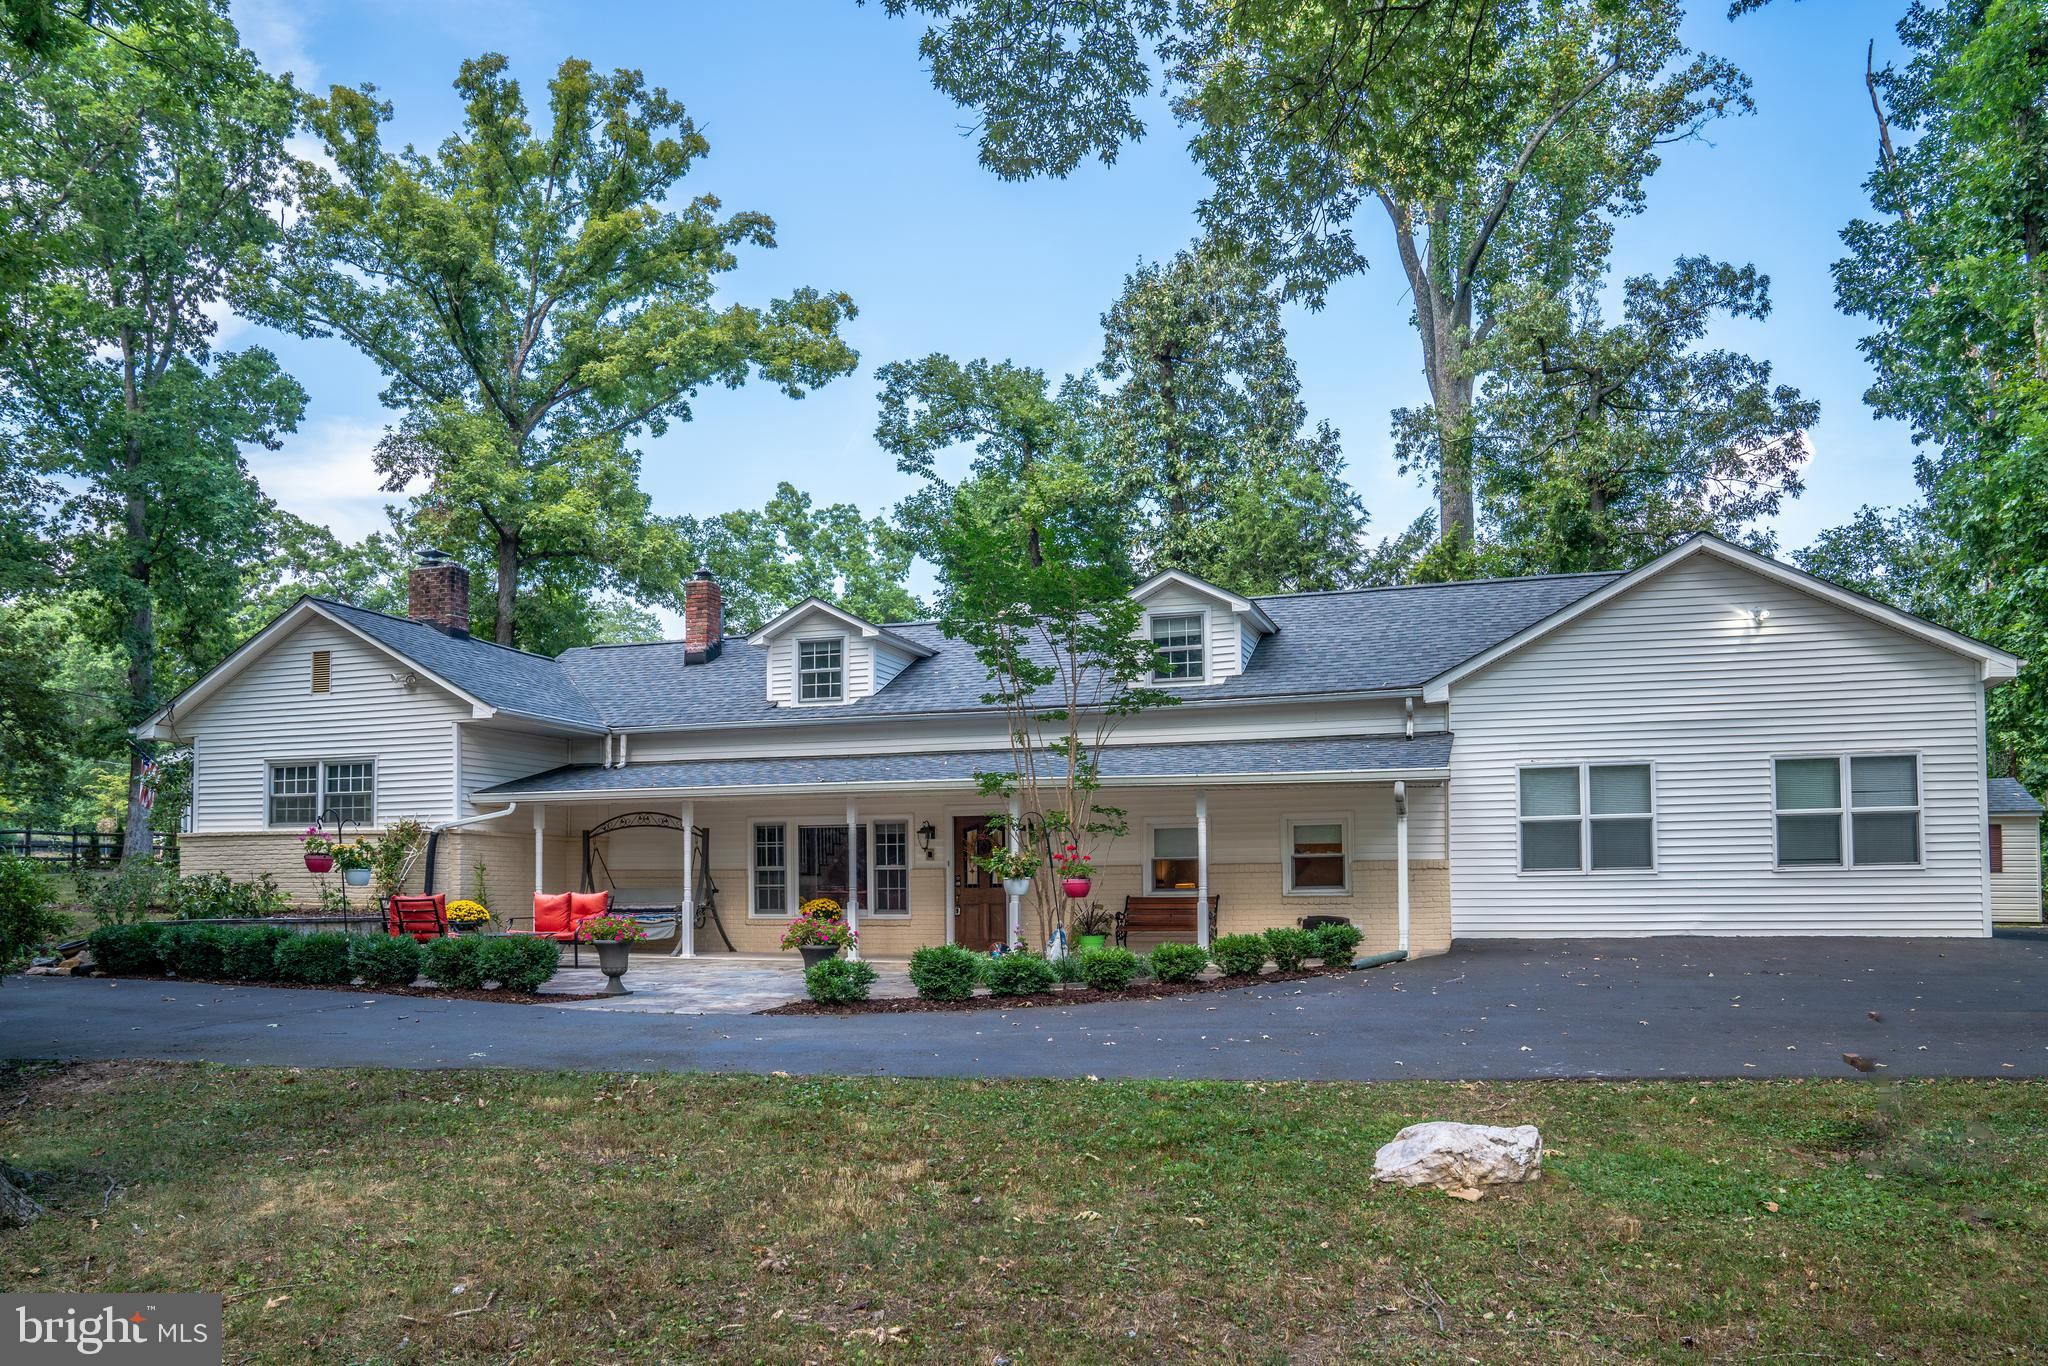 WELCOME TO YOUR GET-AWAY IN THE CITY! This complete renovated multi-level home offers 5 bedrooms, 3. 5 bathroom is surrounded by .7 acres of tranquility making it perfect for fabulous indoor/out living. Among countless of updateds, a brand new roof had just been installed (2019) & a brand new furnace (2018); a set of newer high capacity front load washer/dryer (2017). It has been painted. Adding gorgeous granite counter tops & high end stainless steel appliances in the kitchen complementing it with an extended eat-in bar-top transforms the kitchen into a perfect place to entertain family & guests. This home includes a beautiful patio lounge area in front & enormous deck  extending an end to end of the rear of the home. It has a sunroom as a bonus room, perfect for enterment rain or shine. Tugged away on right of the entrance are 2 bedrooms, 1 huge game/recreation room (pos guest room) with a beatiful full bathroom. An enormous storage space above the game room & the adjoining laundray room. Your family is quickly warmed by the wood burning fire plac upon entry. The tranquility is a perfect get-away for it is a hidden treasure in the heart of Annandale, surrounded by countless of shops, restaurants & conviniences. This home has been priced for a quick sale. So do not miss this rare find.